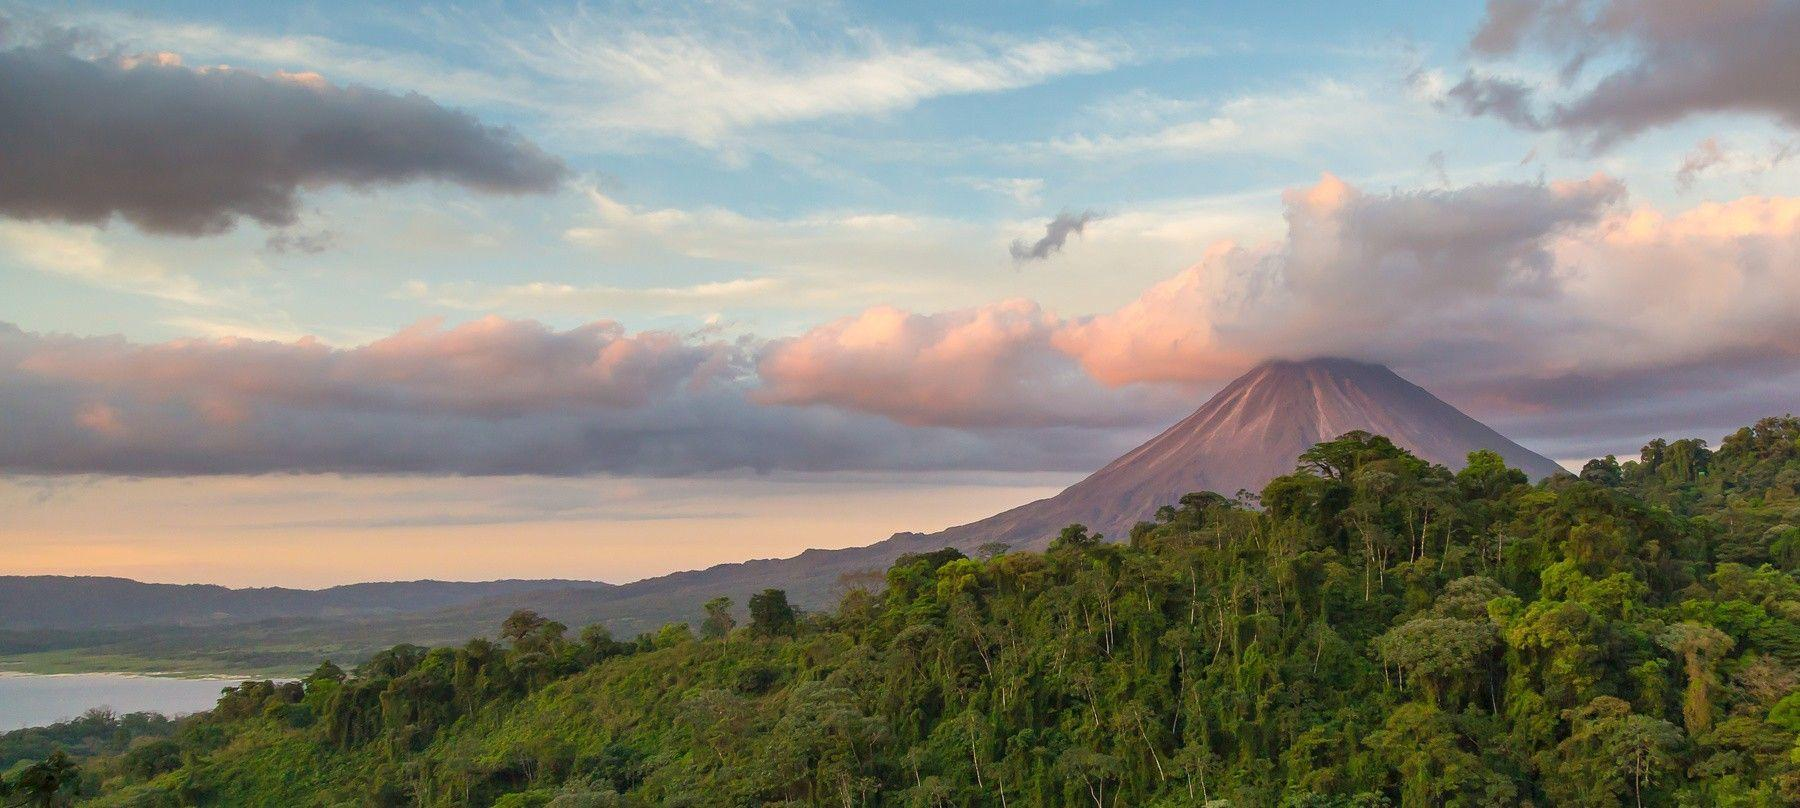 costa-rica-volcan-arenal